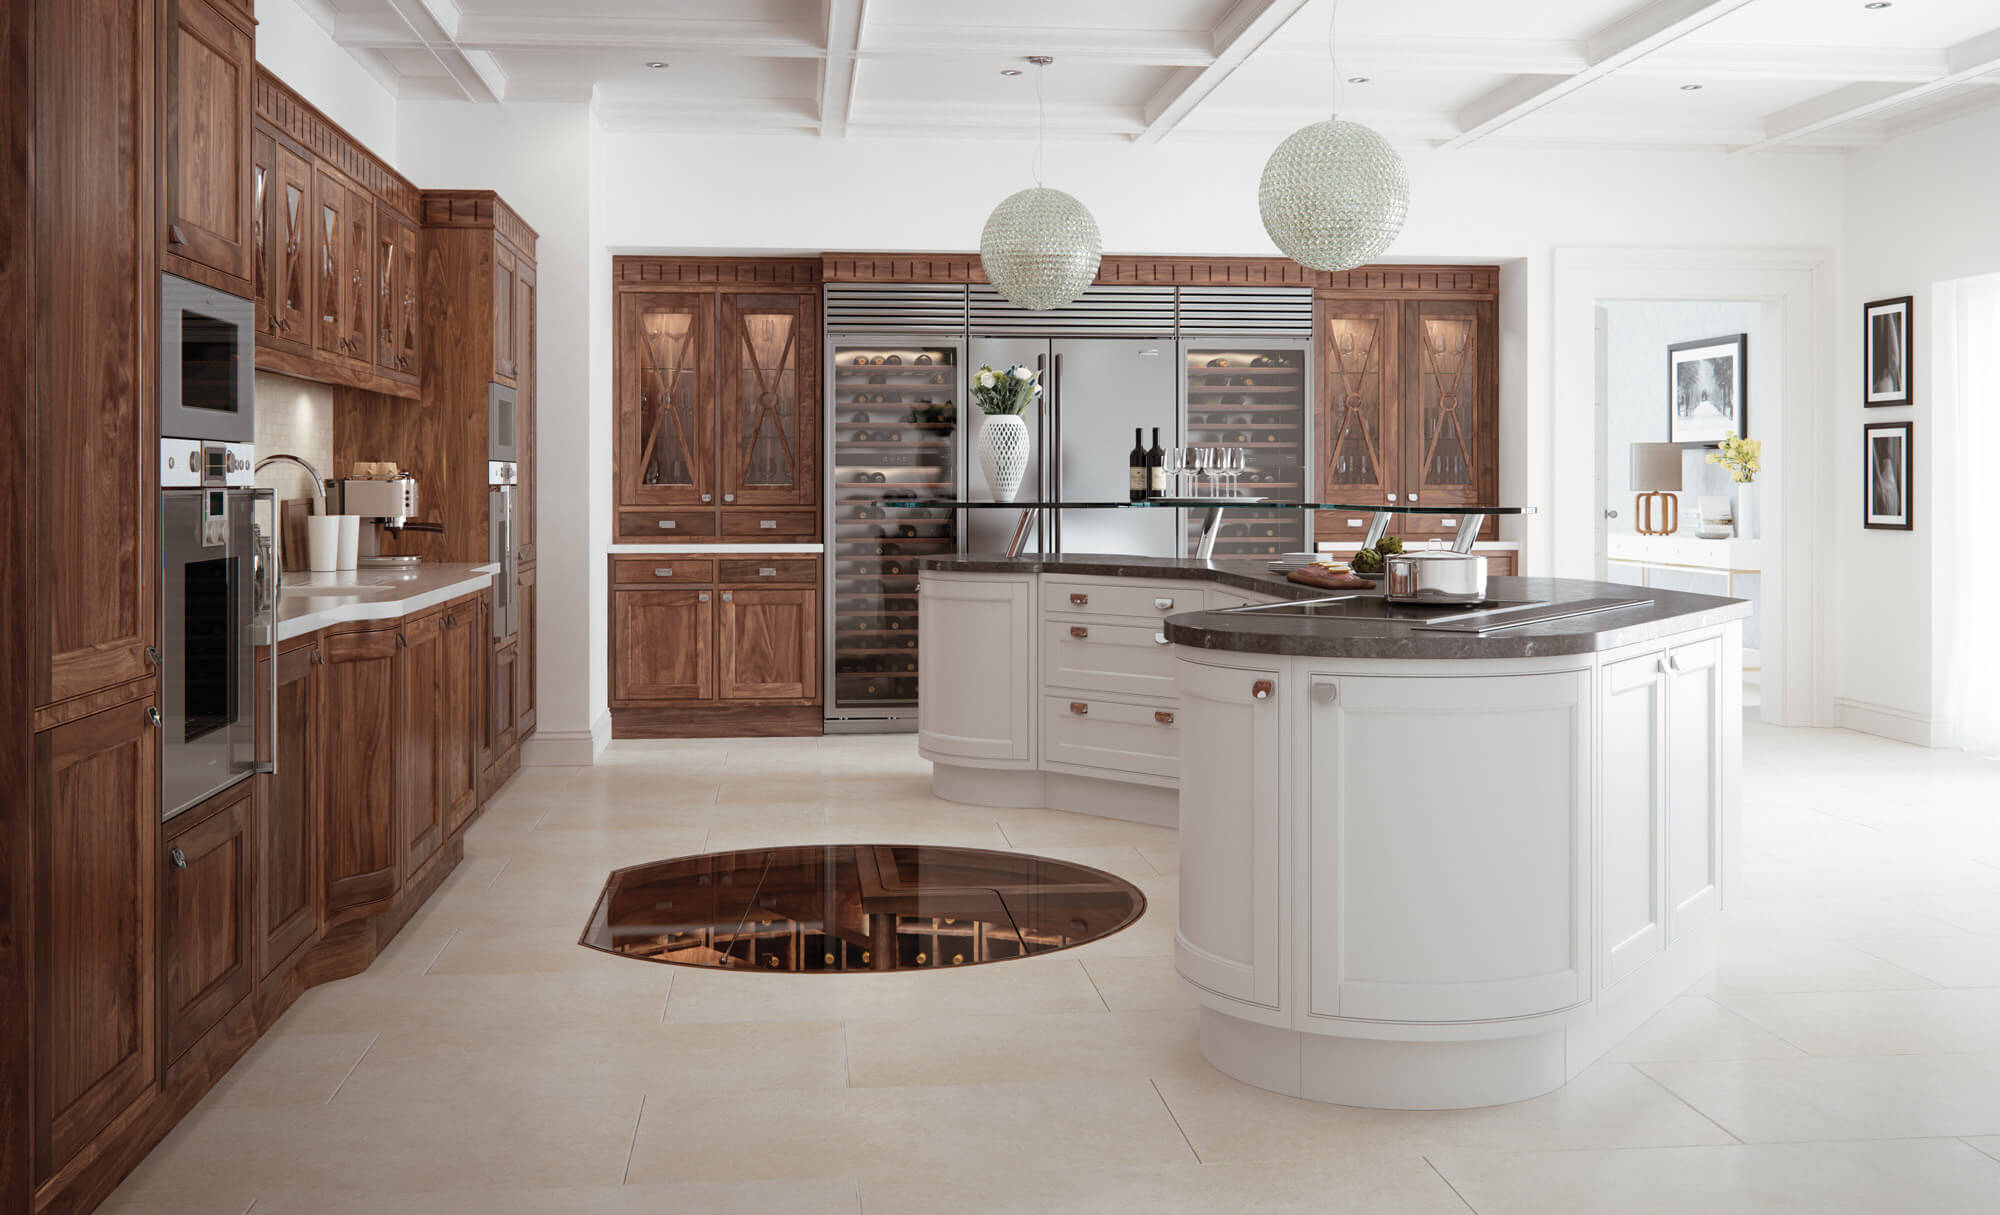 Calgary & Victoria Kitchen in Walnut and Painted Brilliant White